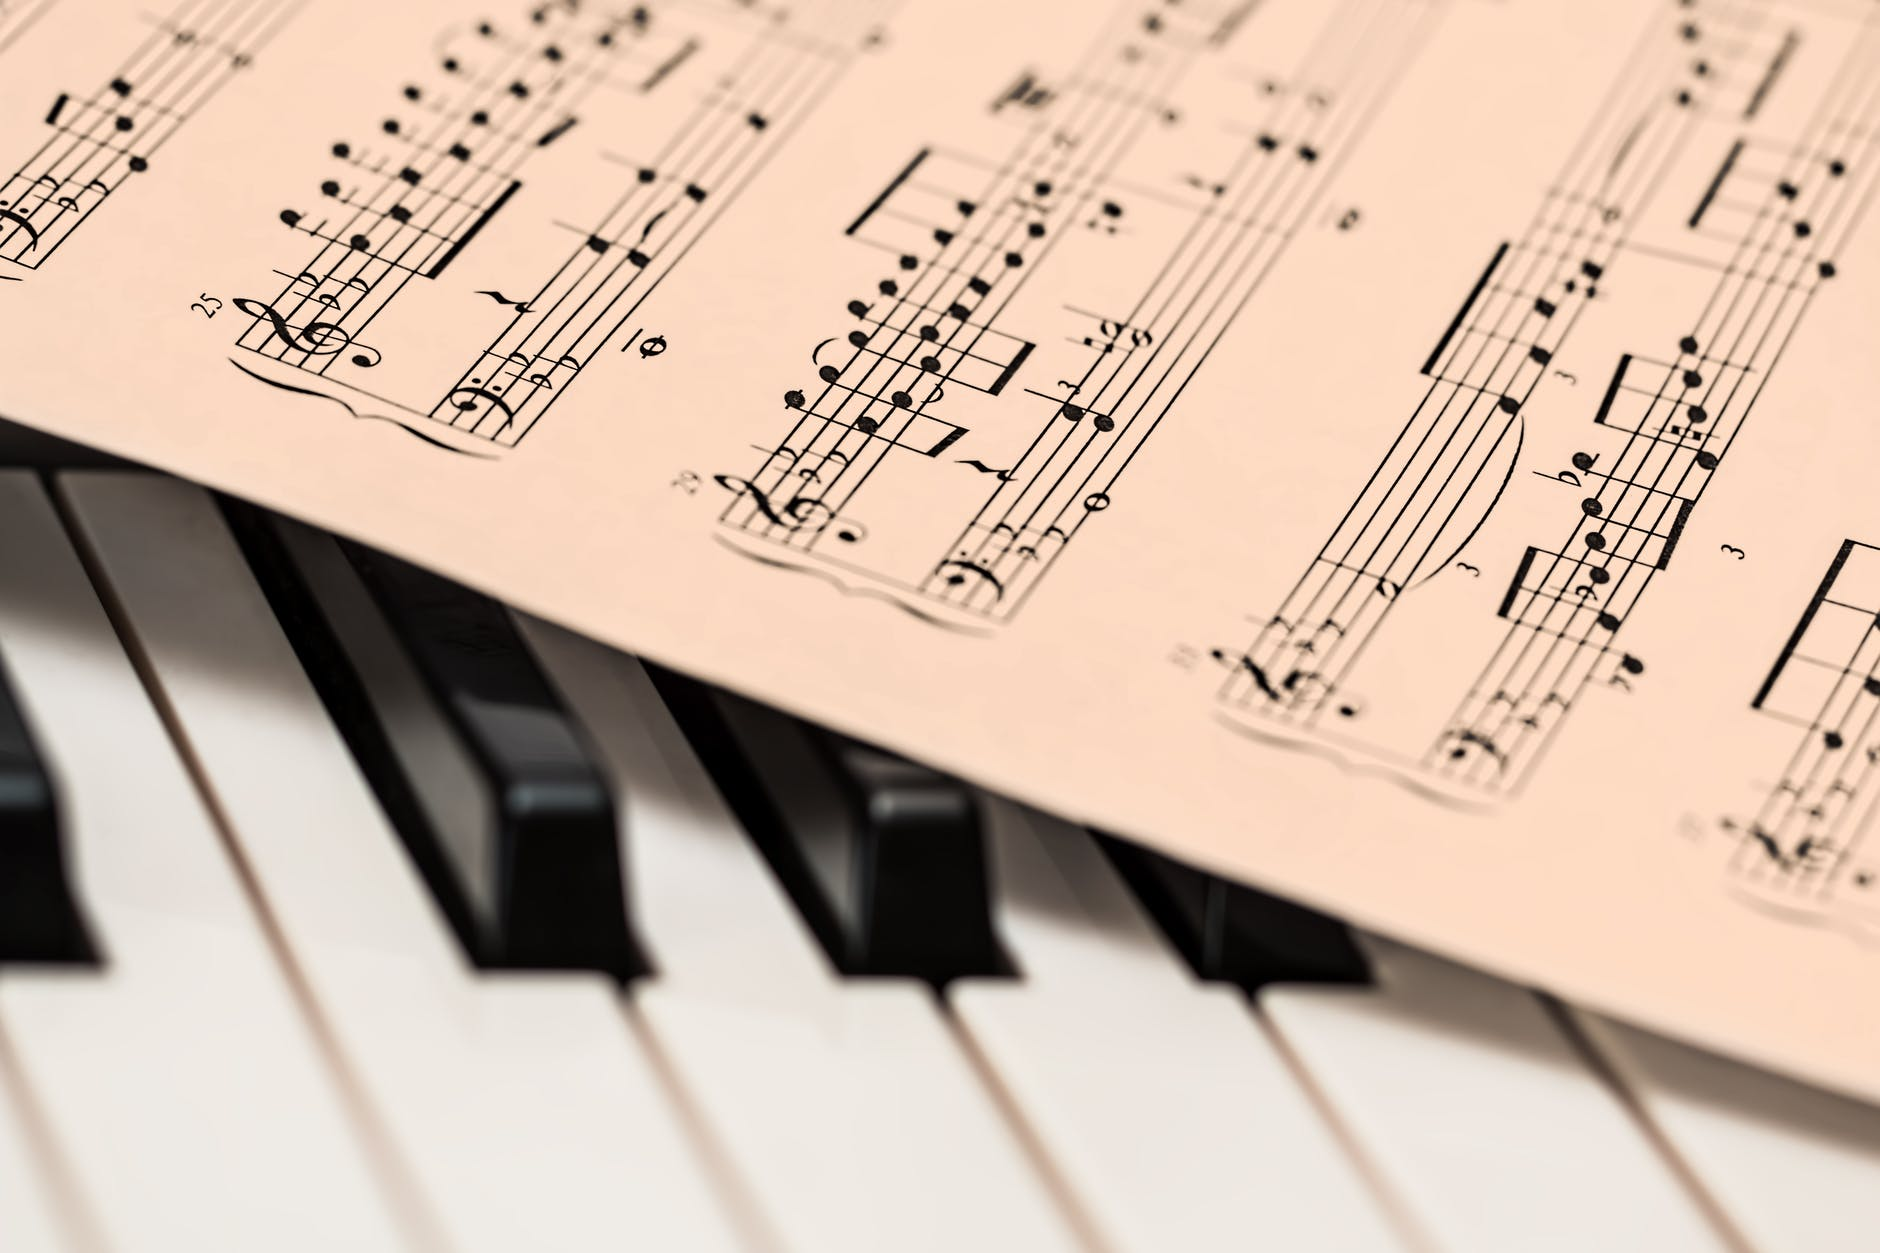 Piano keys upon which is laid sheet music in the key of E flat, printed on pink paper.